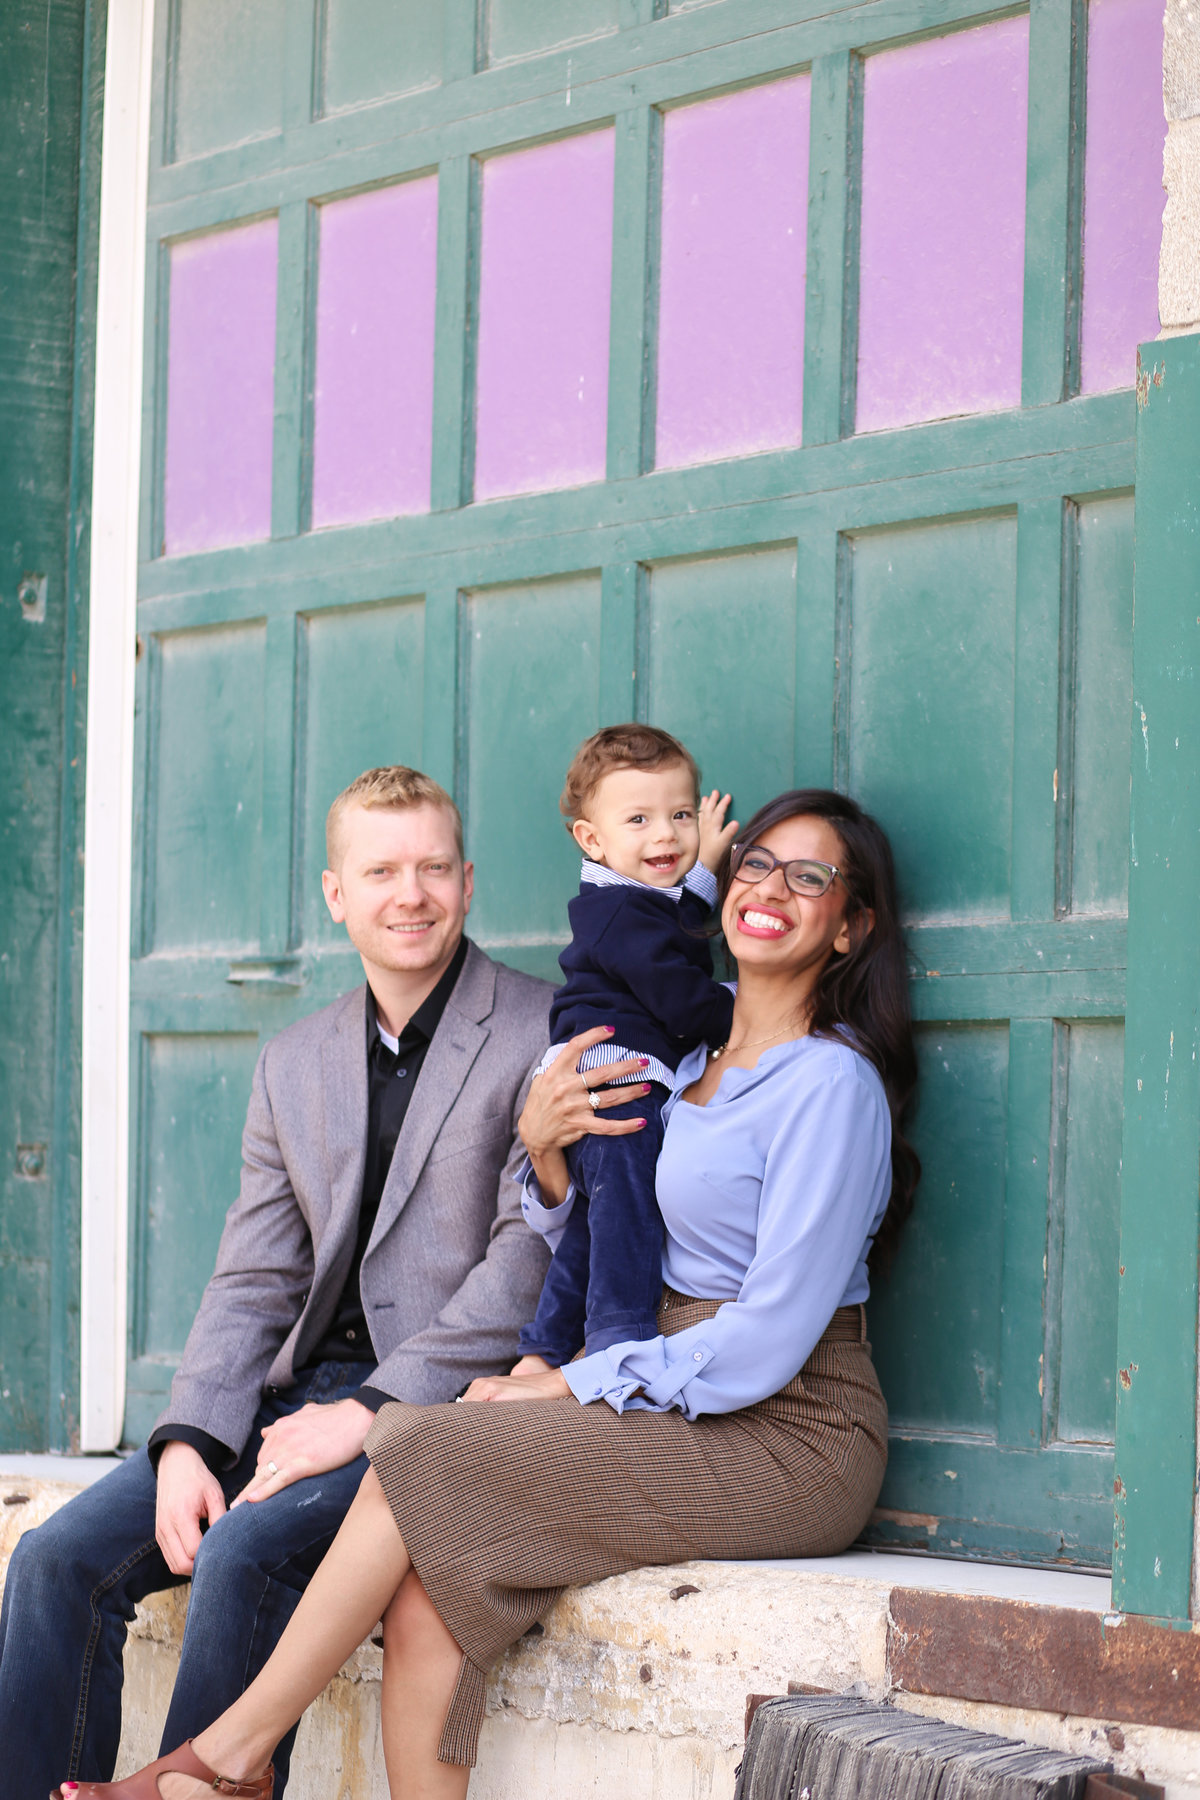 Family Photographer - Lifestyle Photographer Near Me - Studio Photography West Bottoms Kansas City